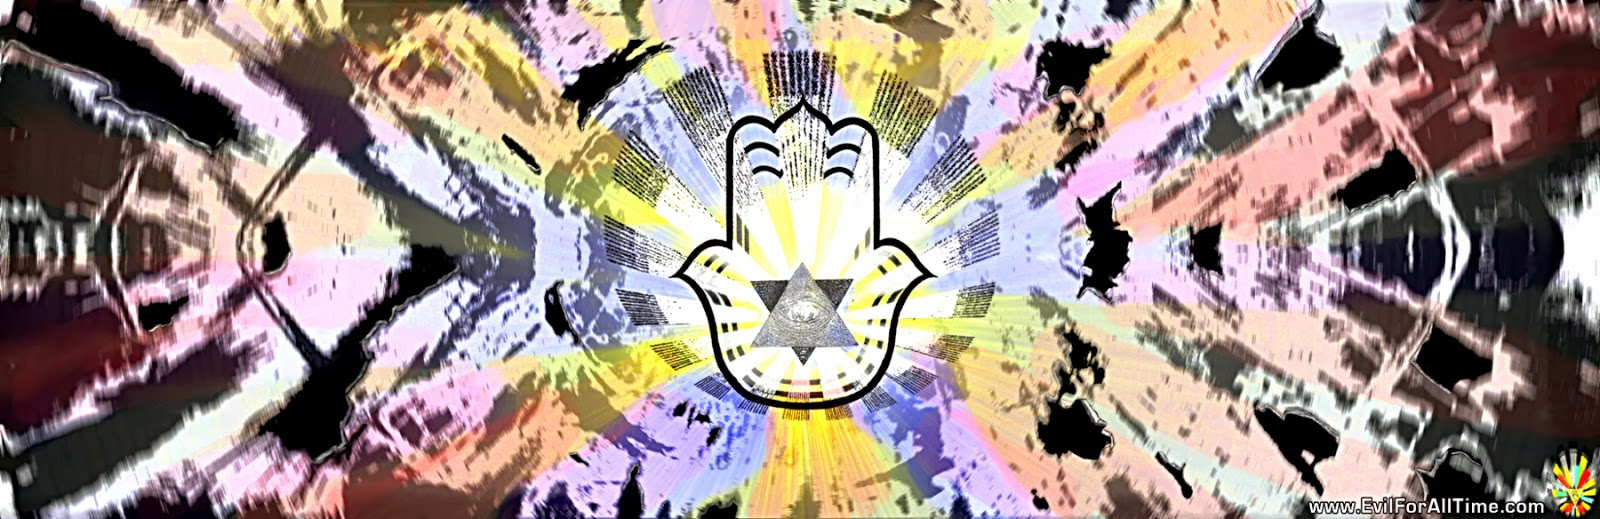 Evil for all time methods of modern mind lock absolution hamsa absolution hamsa realized biocorpaavc Image collections